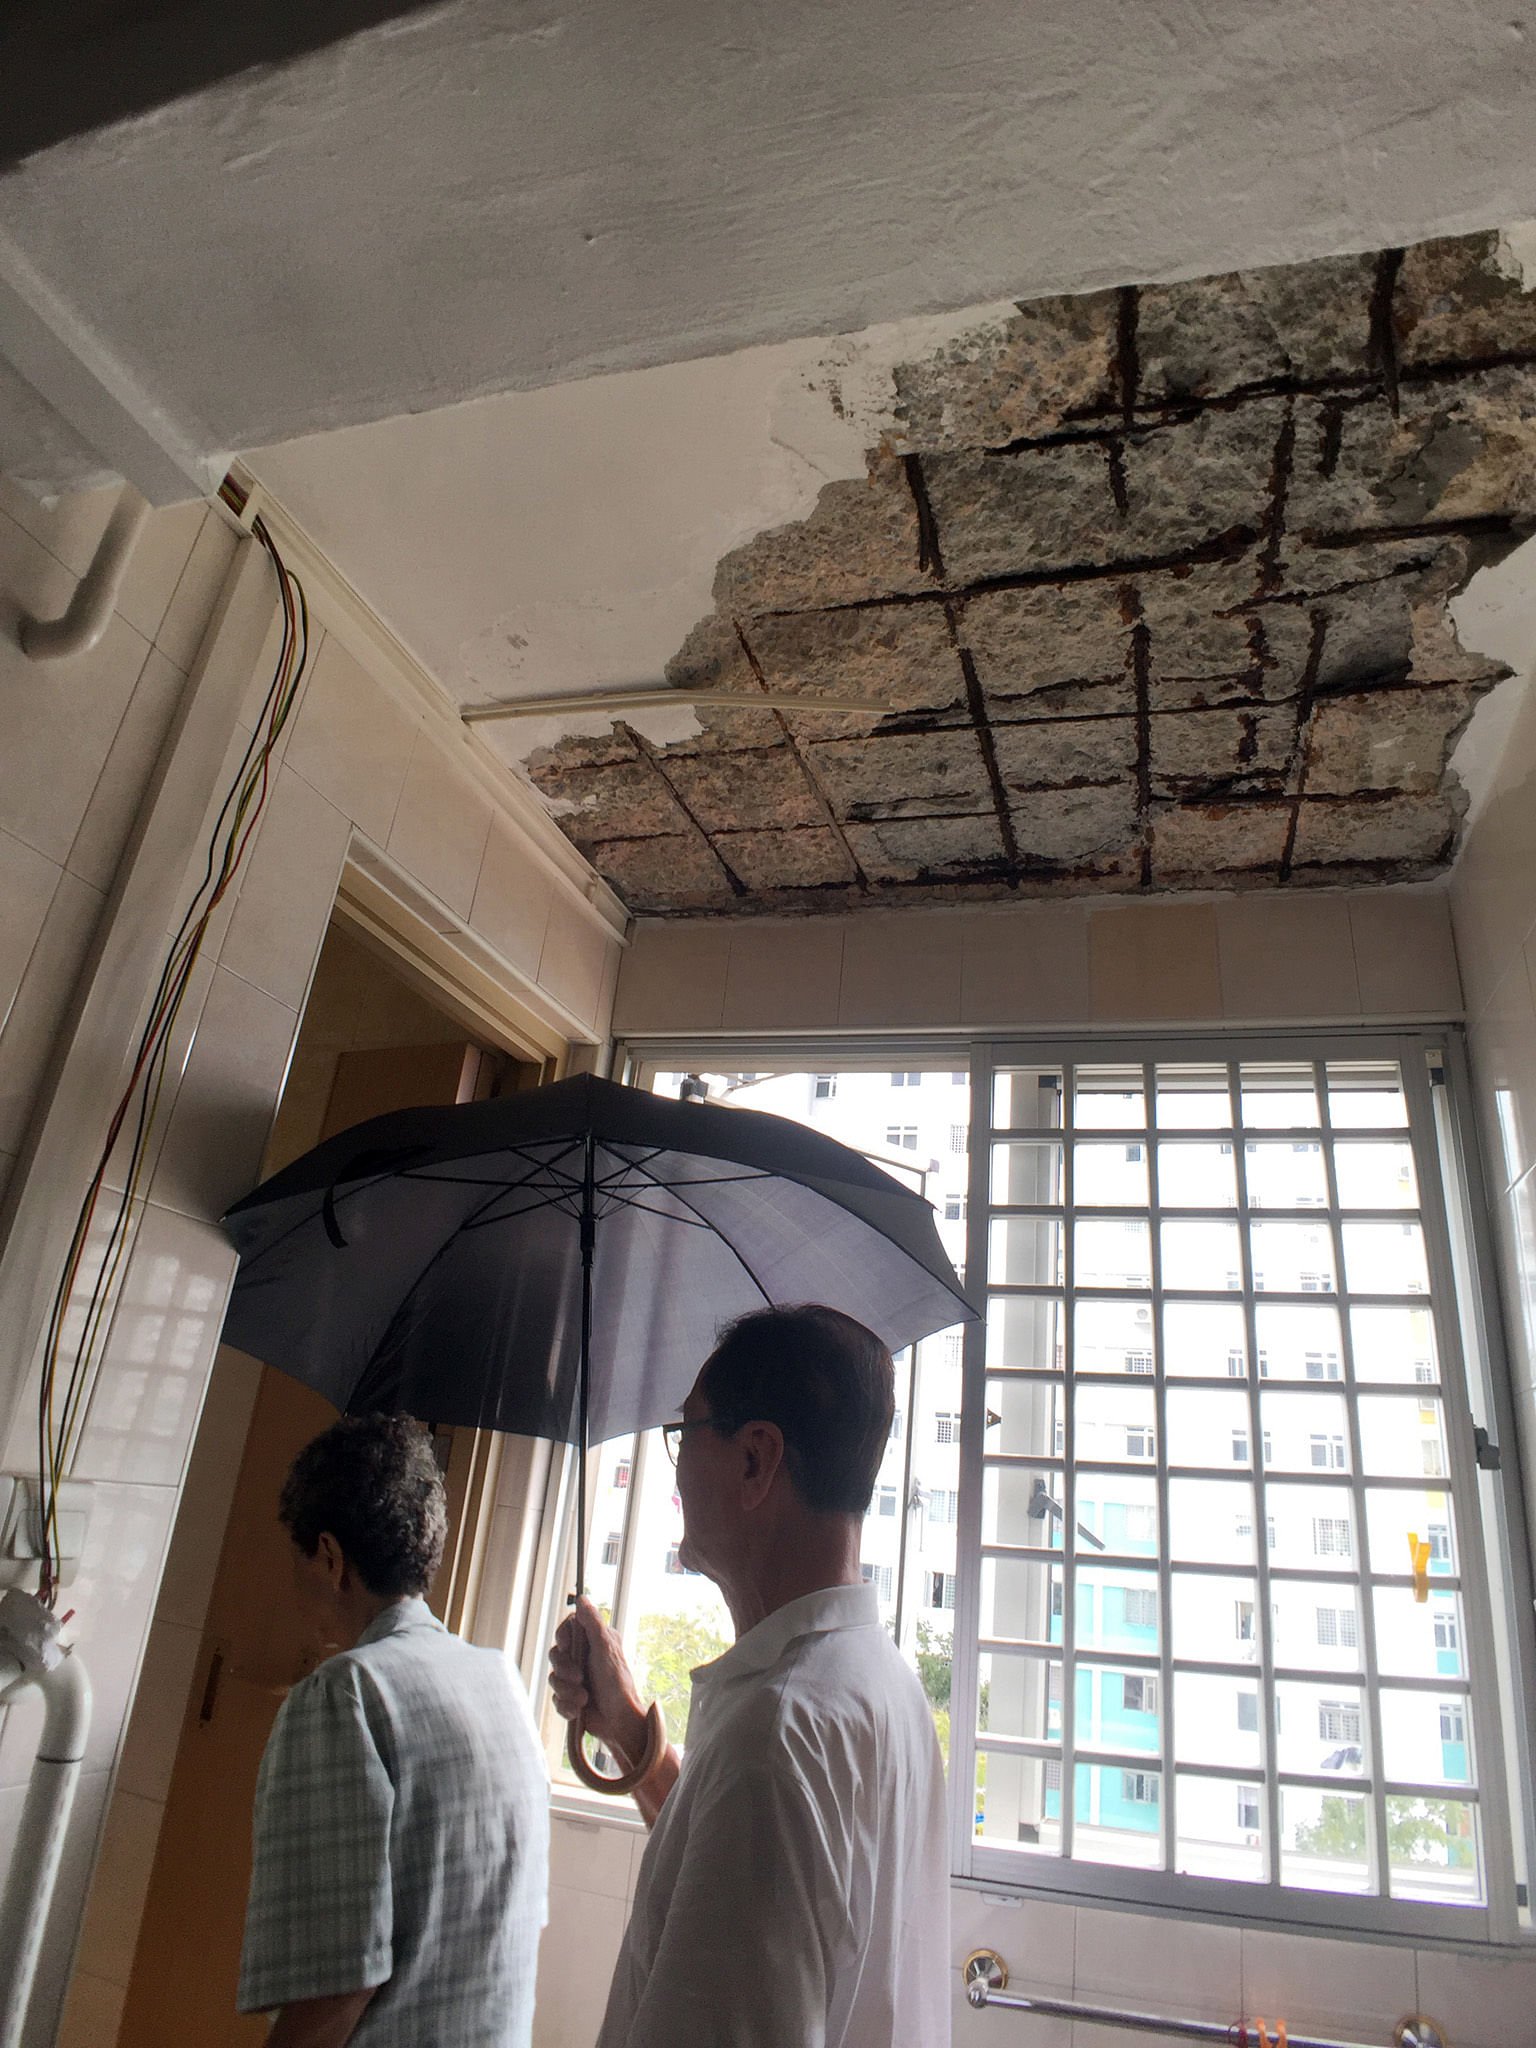 Concrete Chunks Fall From Ceiling Of 43 Year Old Flat Housing